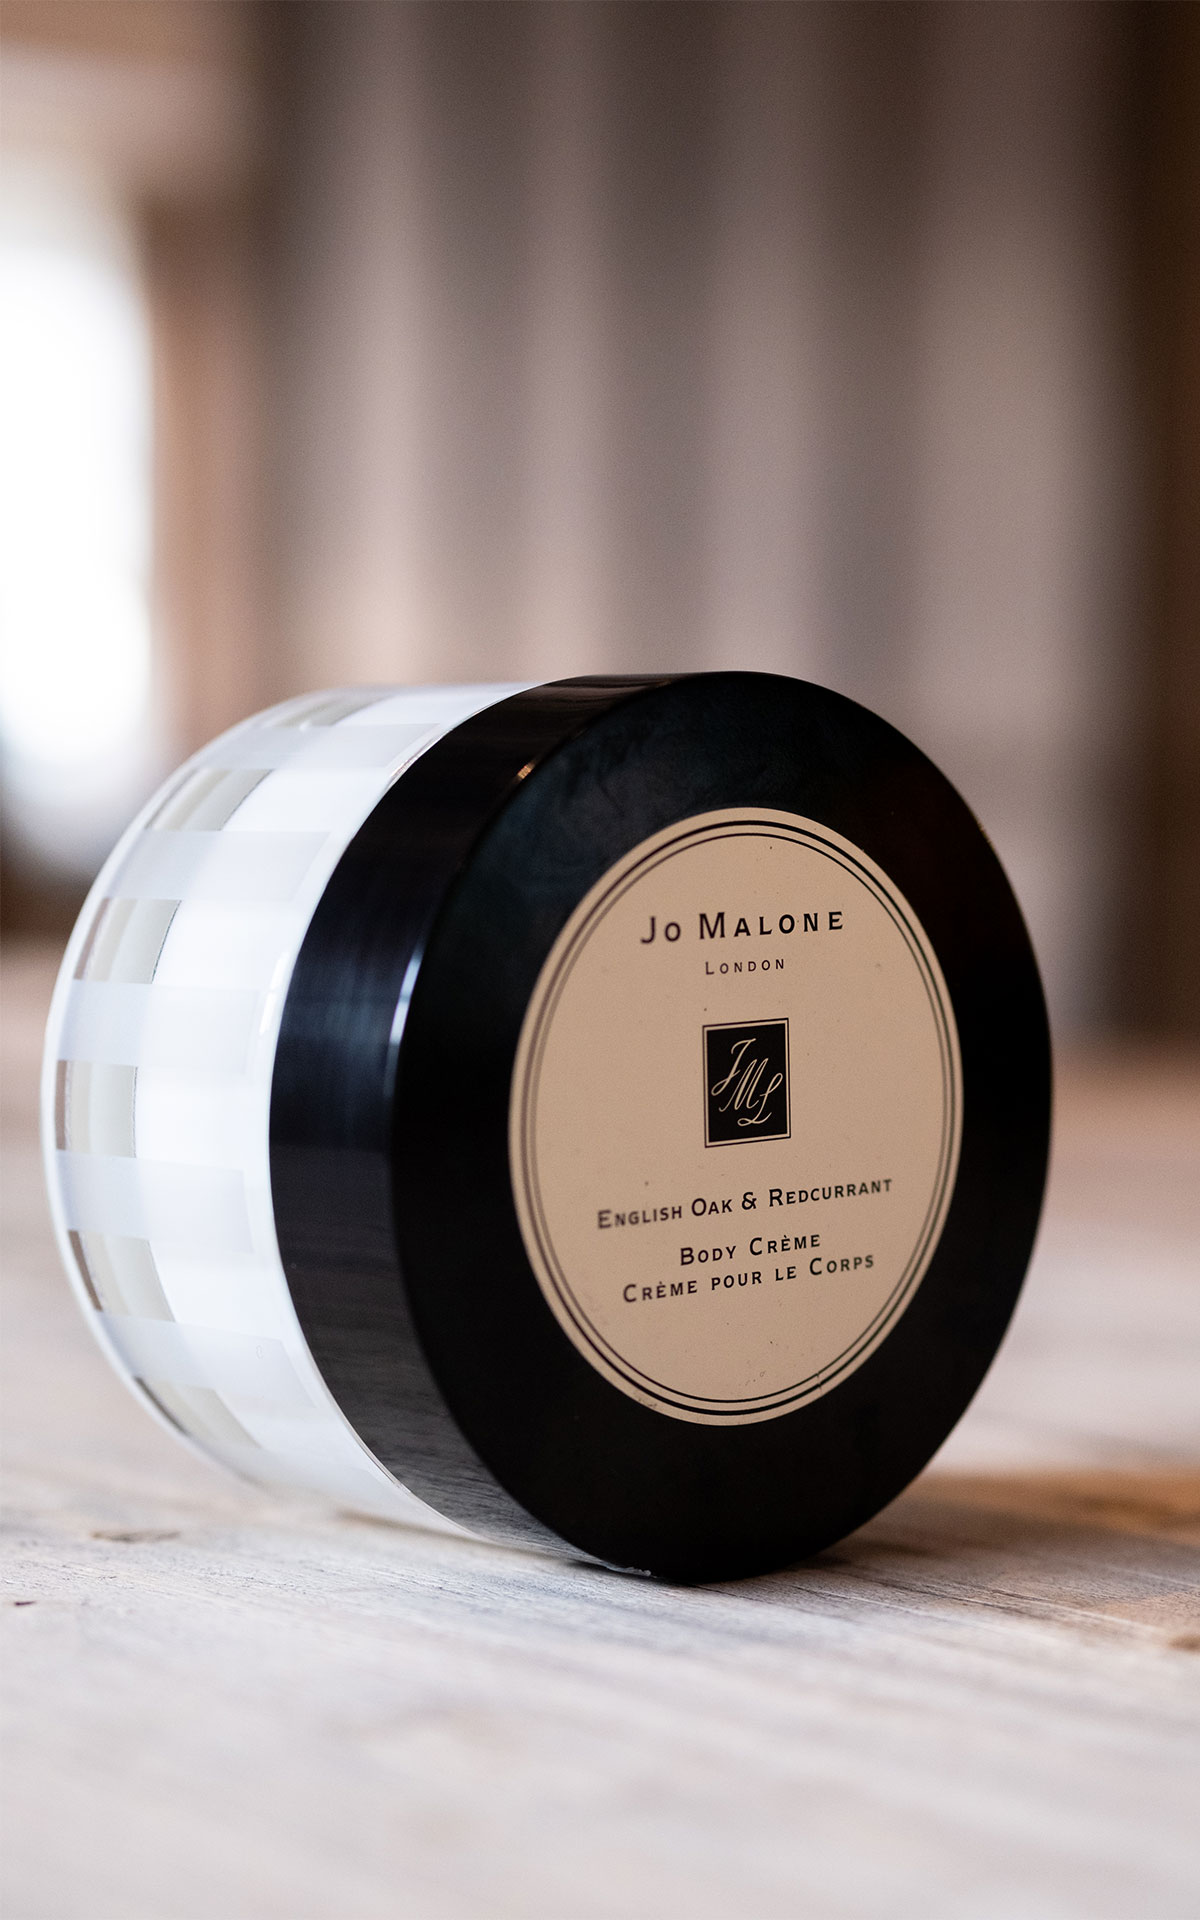 Jo Malone London English oak and redcurrent body crème 50ml from Bicester Village